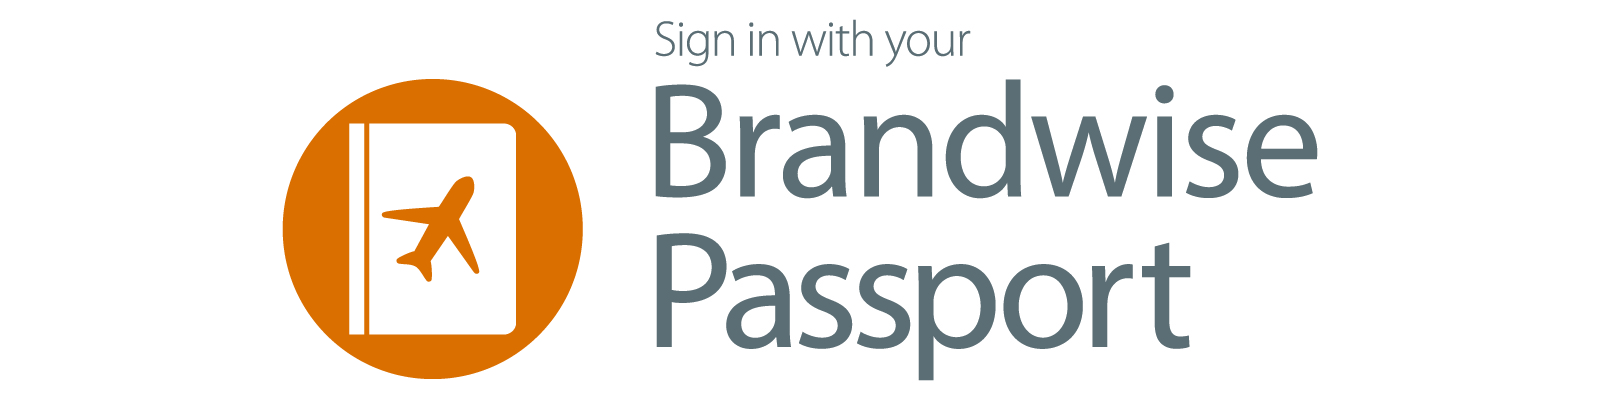 Sign in with your Brandwise Passport logo